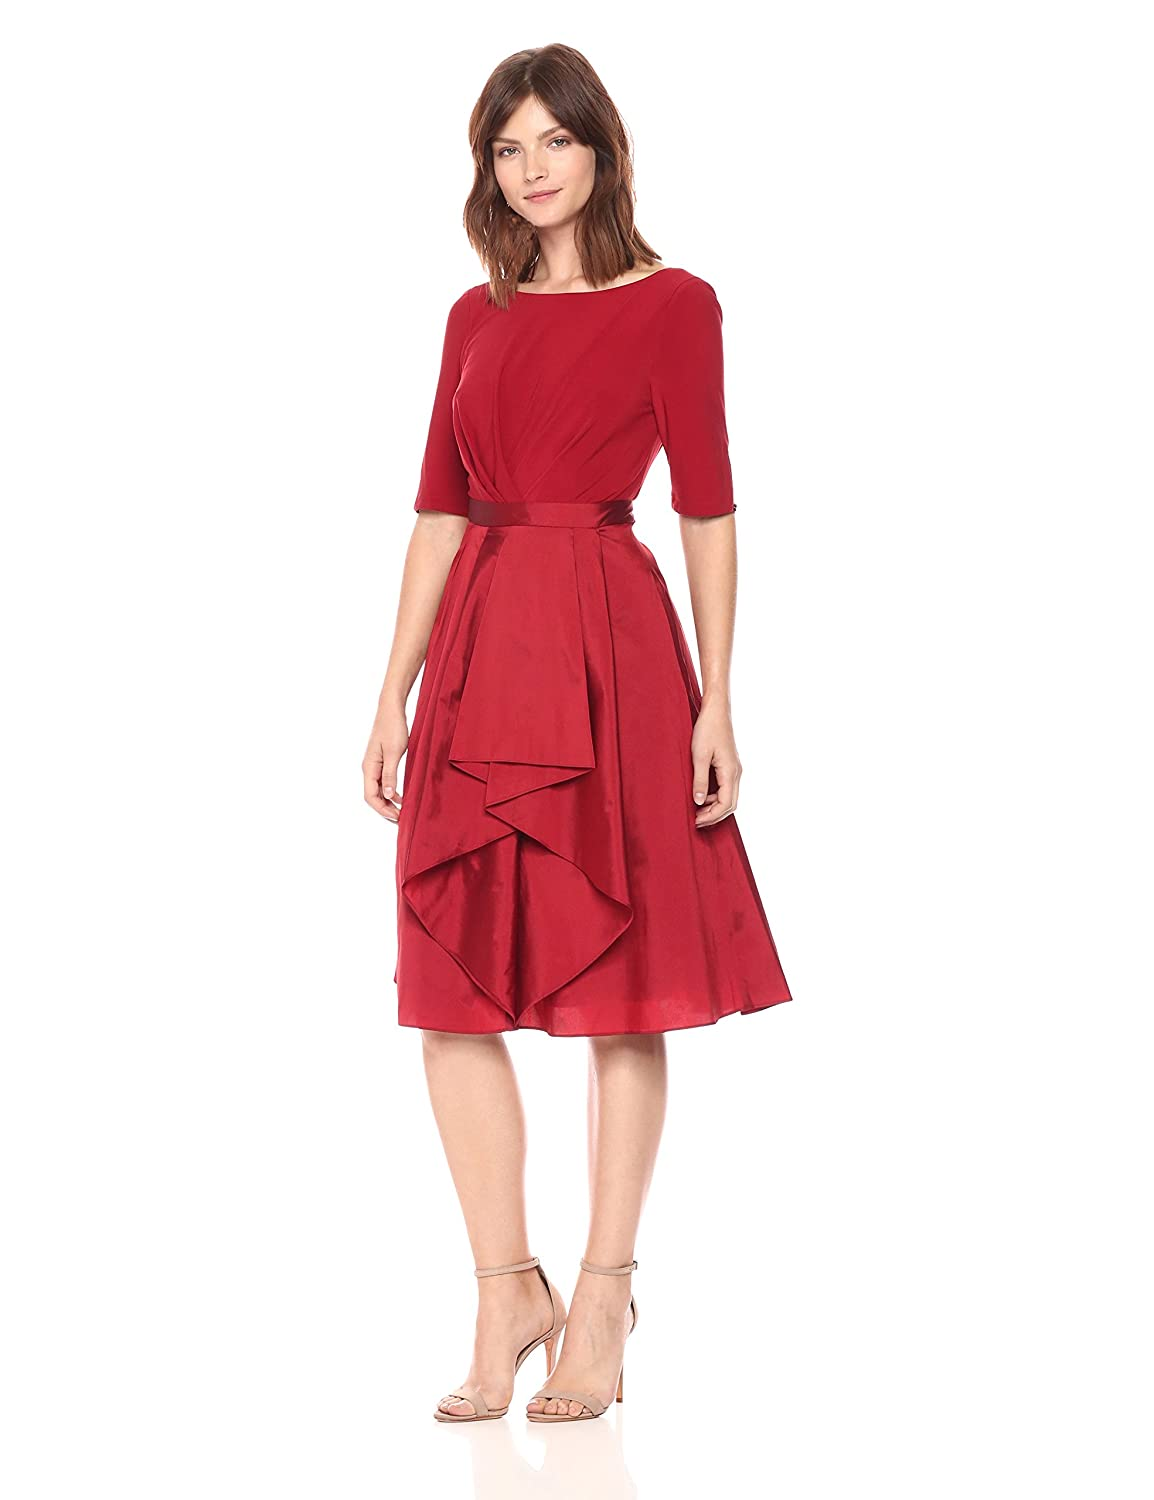 19a4882074 Top1  Adrianna Papell Women s Origami Taffeta and Jersey Dress. Wholesale  ...